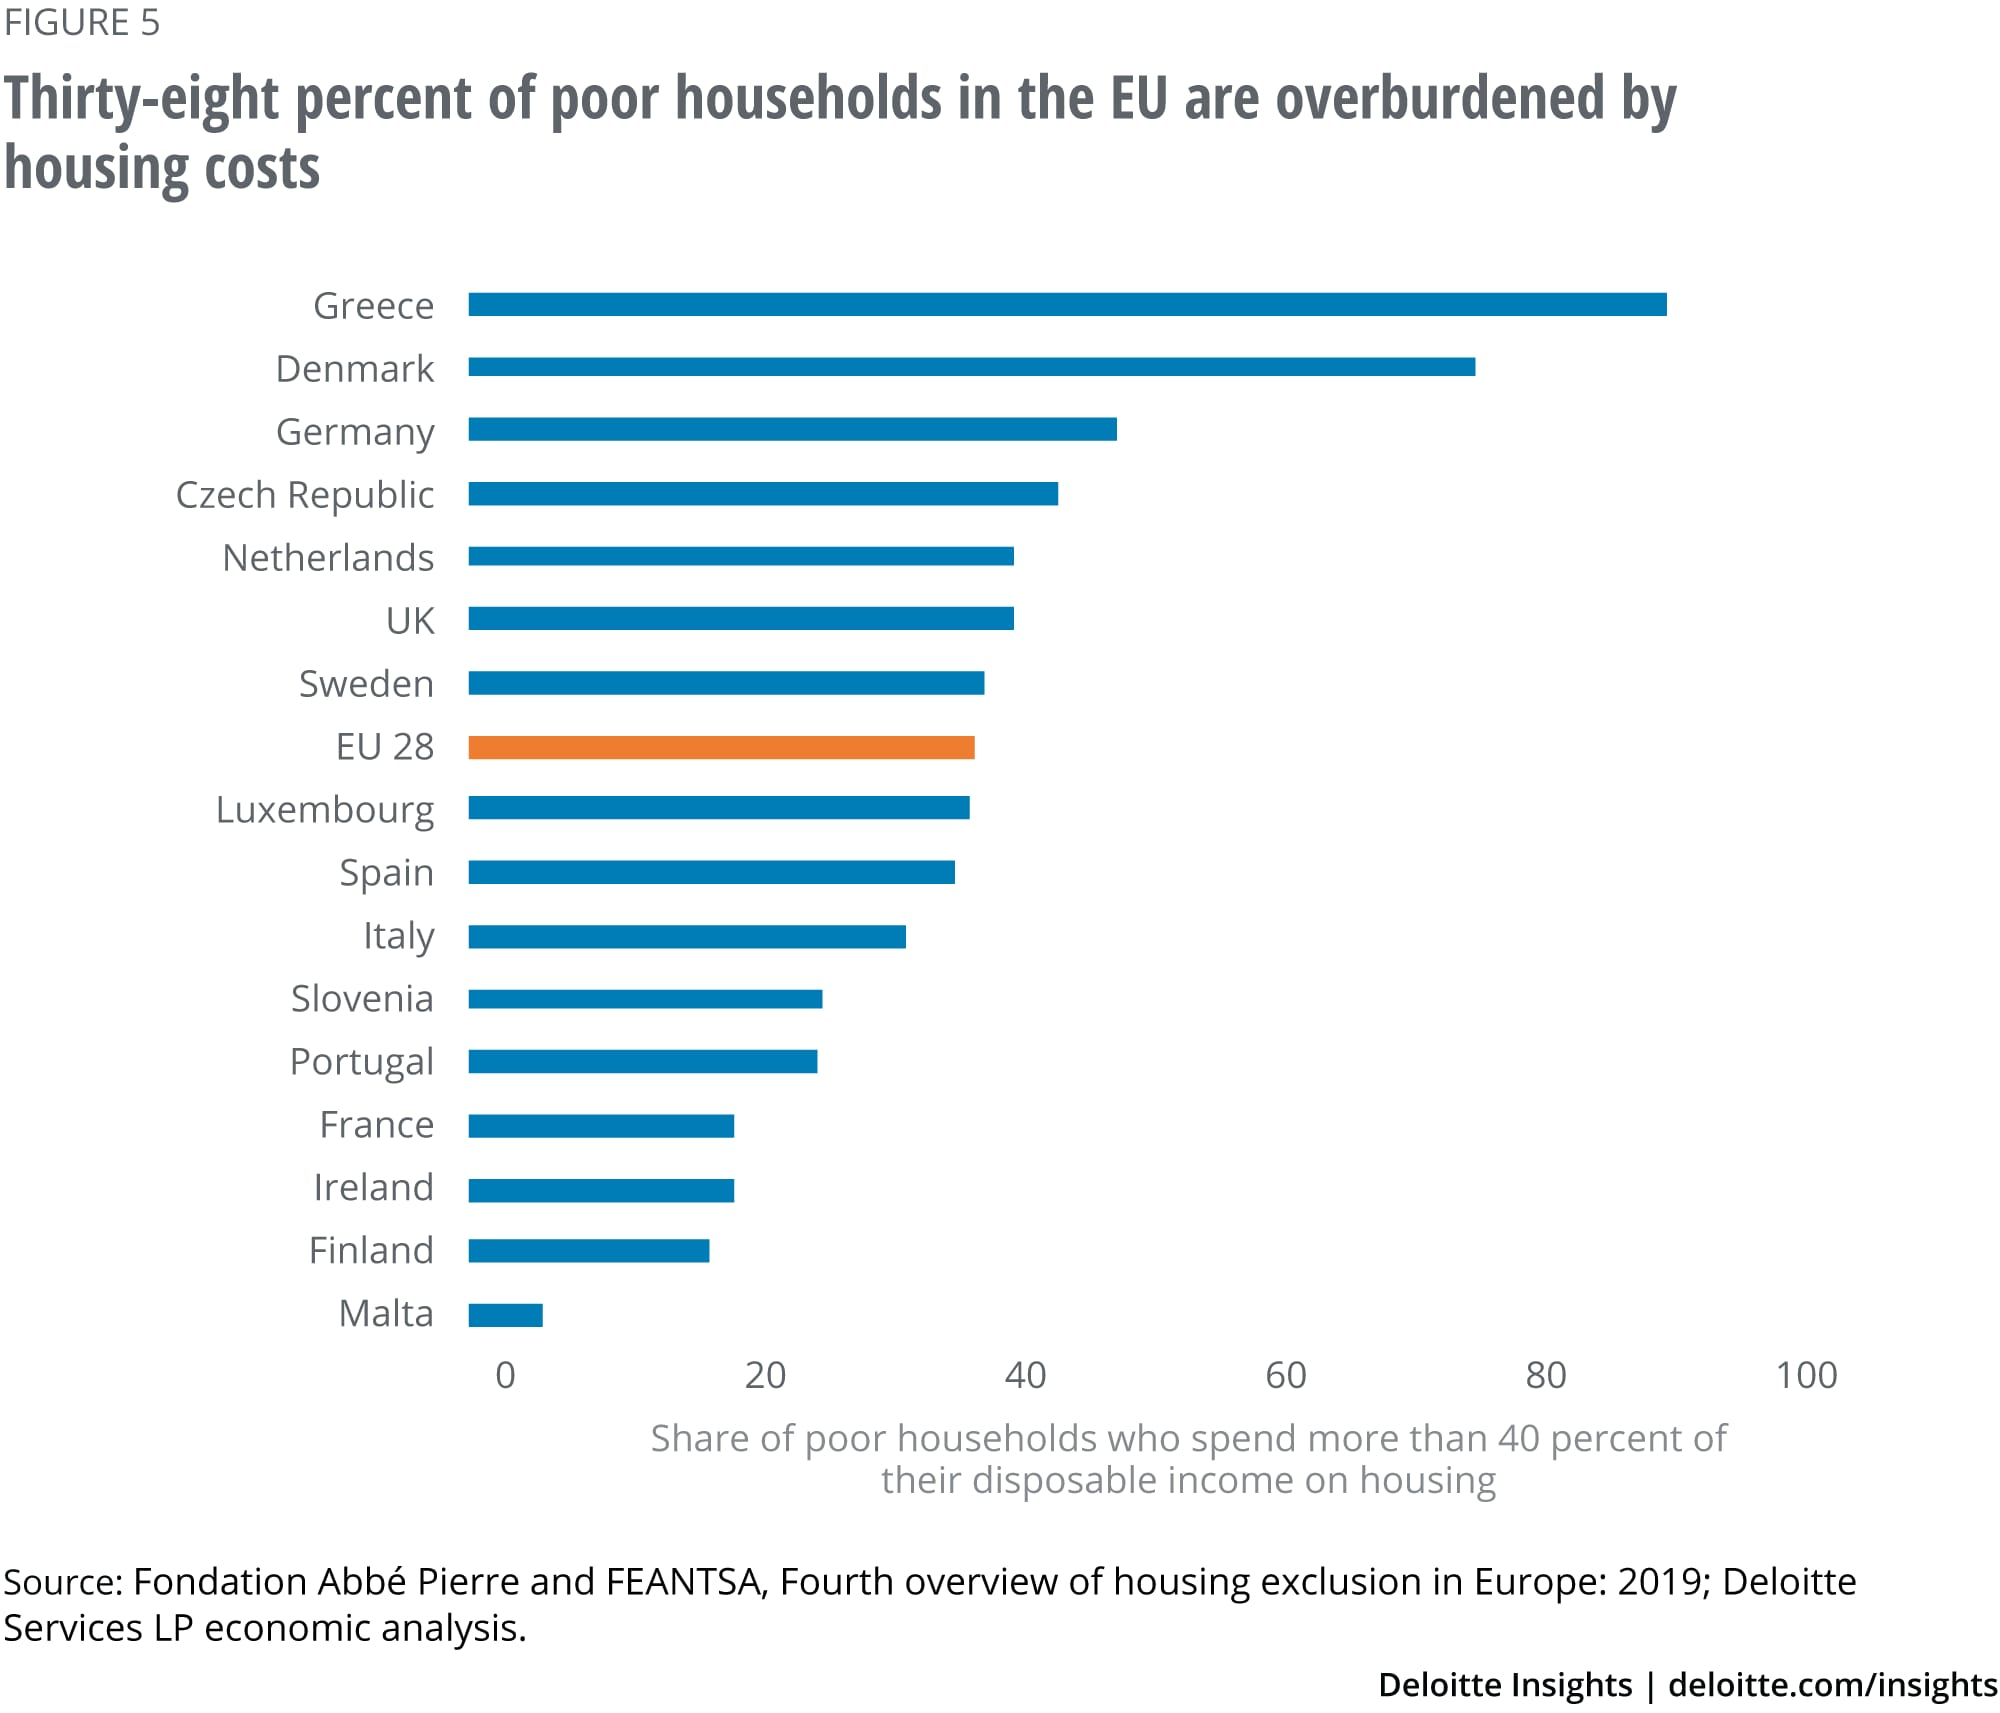 Thirty-eight percent of poor households in the EU are overburdened by housing costs